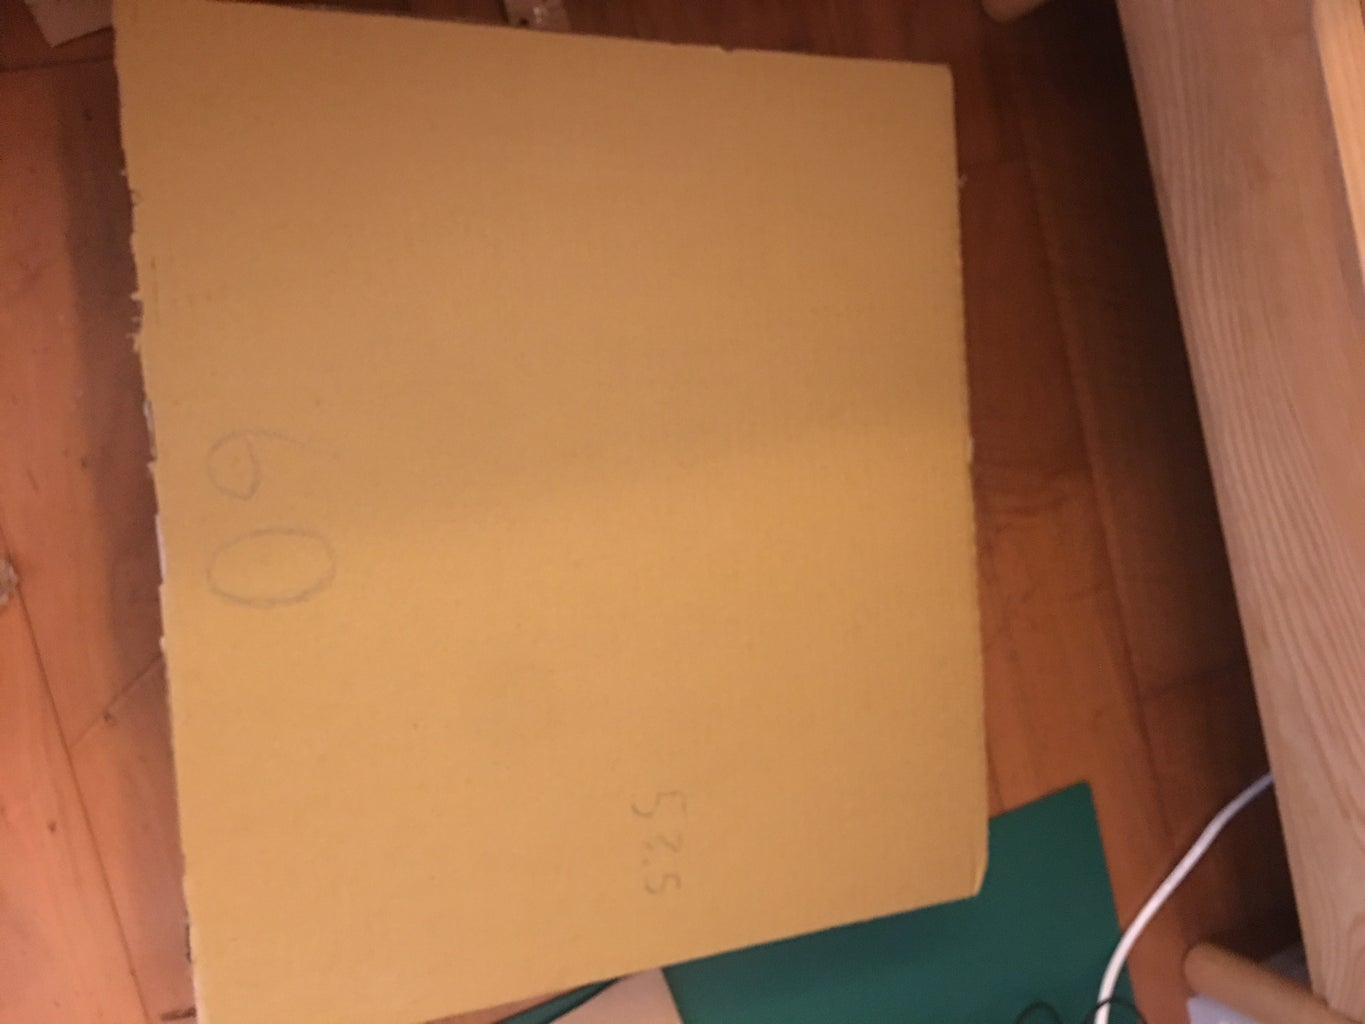 Making the Outline of the Display Stand